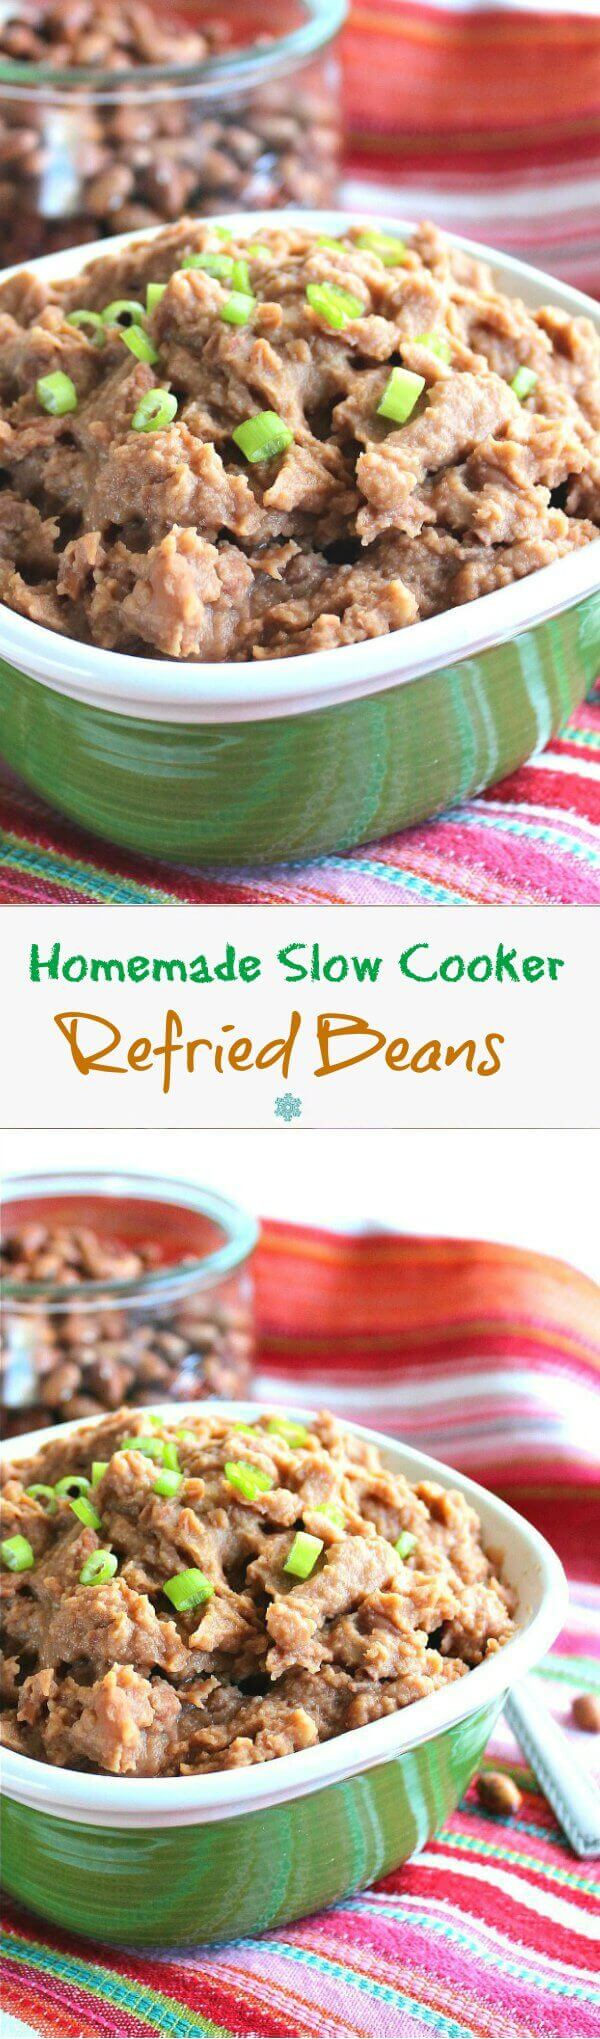 Refried Beans Homemade in the Slow Cooker is a side dish made with ease. So much tastier and inexpensive than the store bought ones.